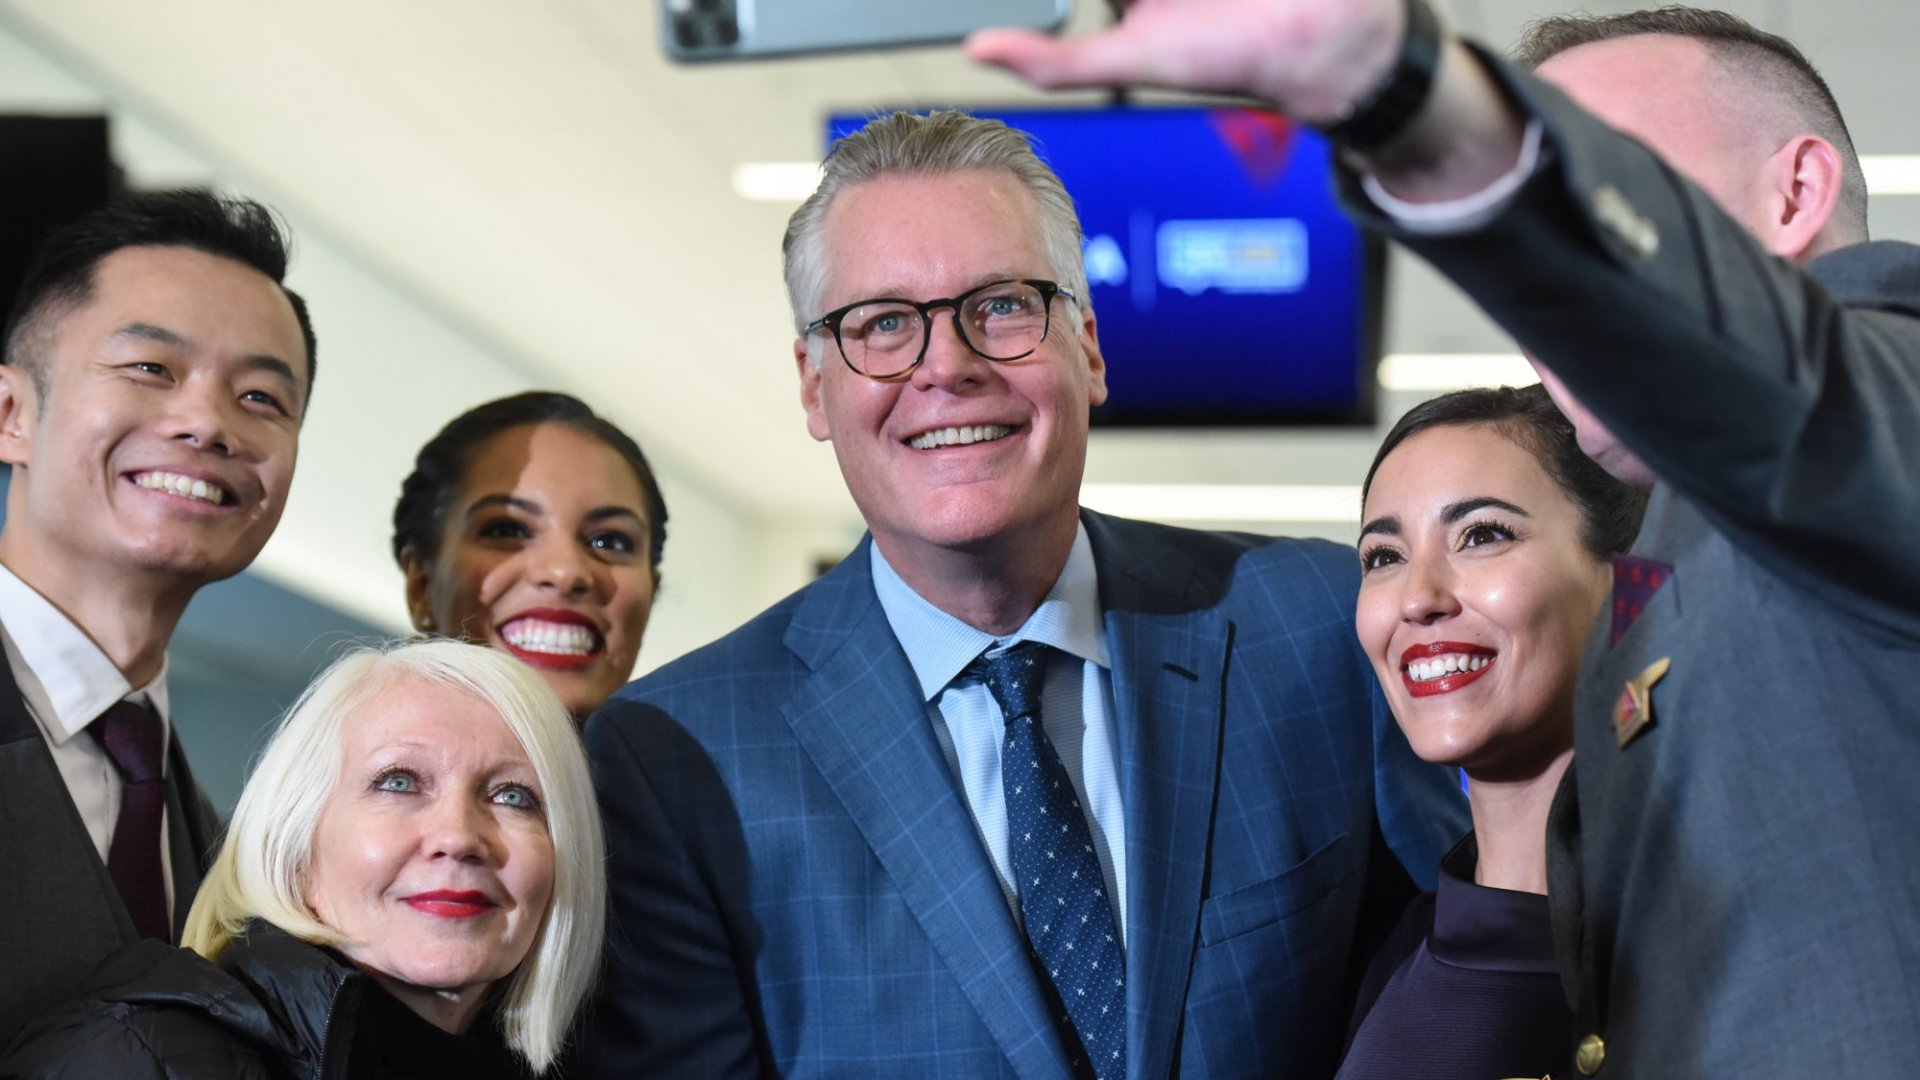 After a Seat Dispute Video Went Viral, Delta's CEO Tried to Have It Both Ways. Here's Why That Never Works